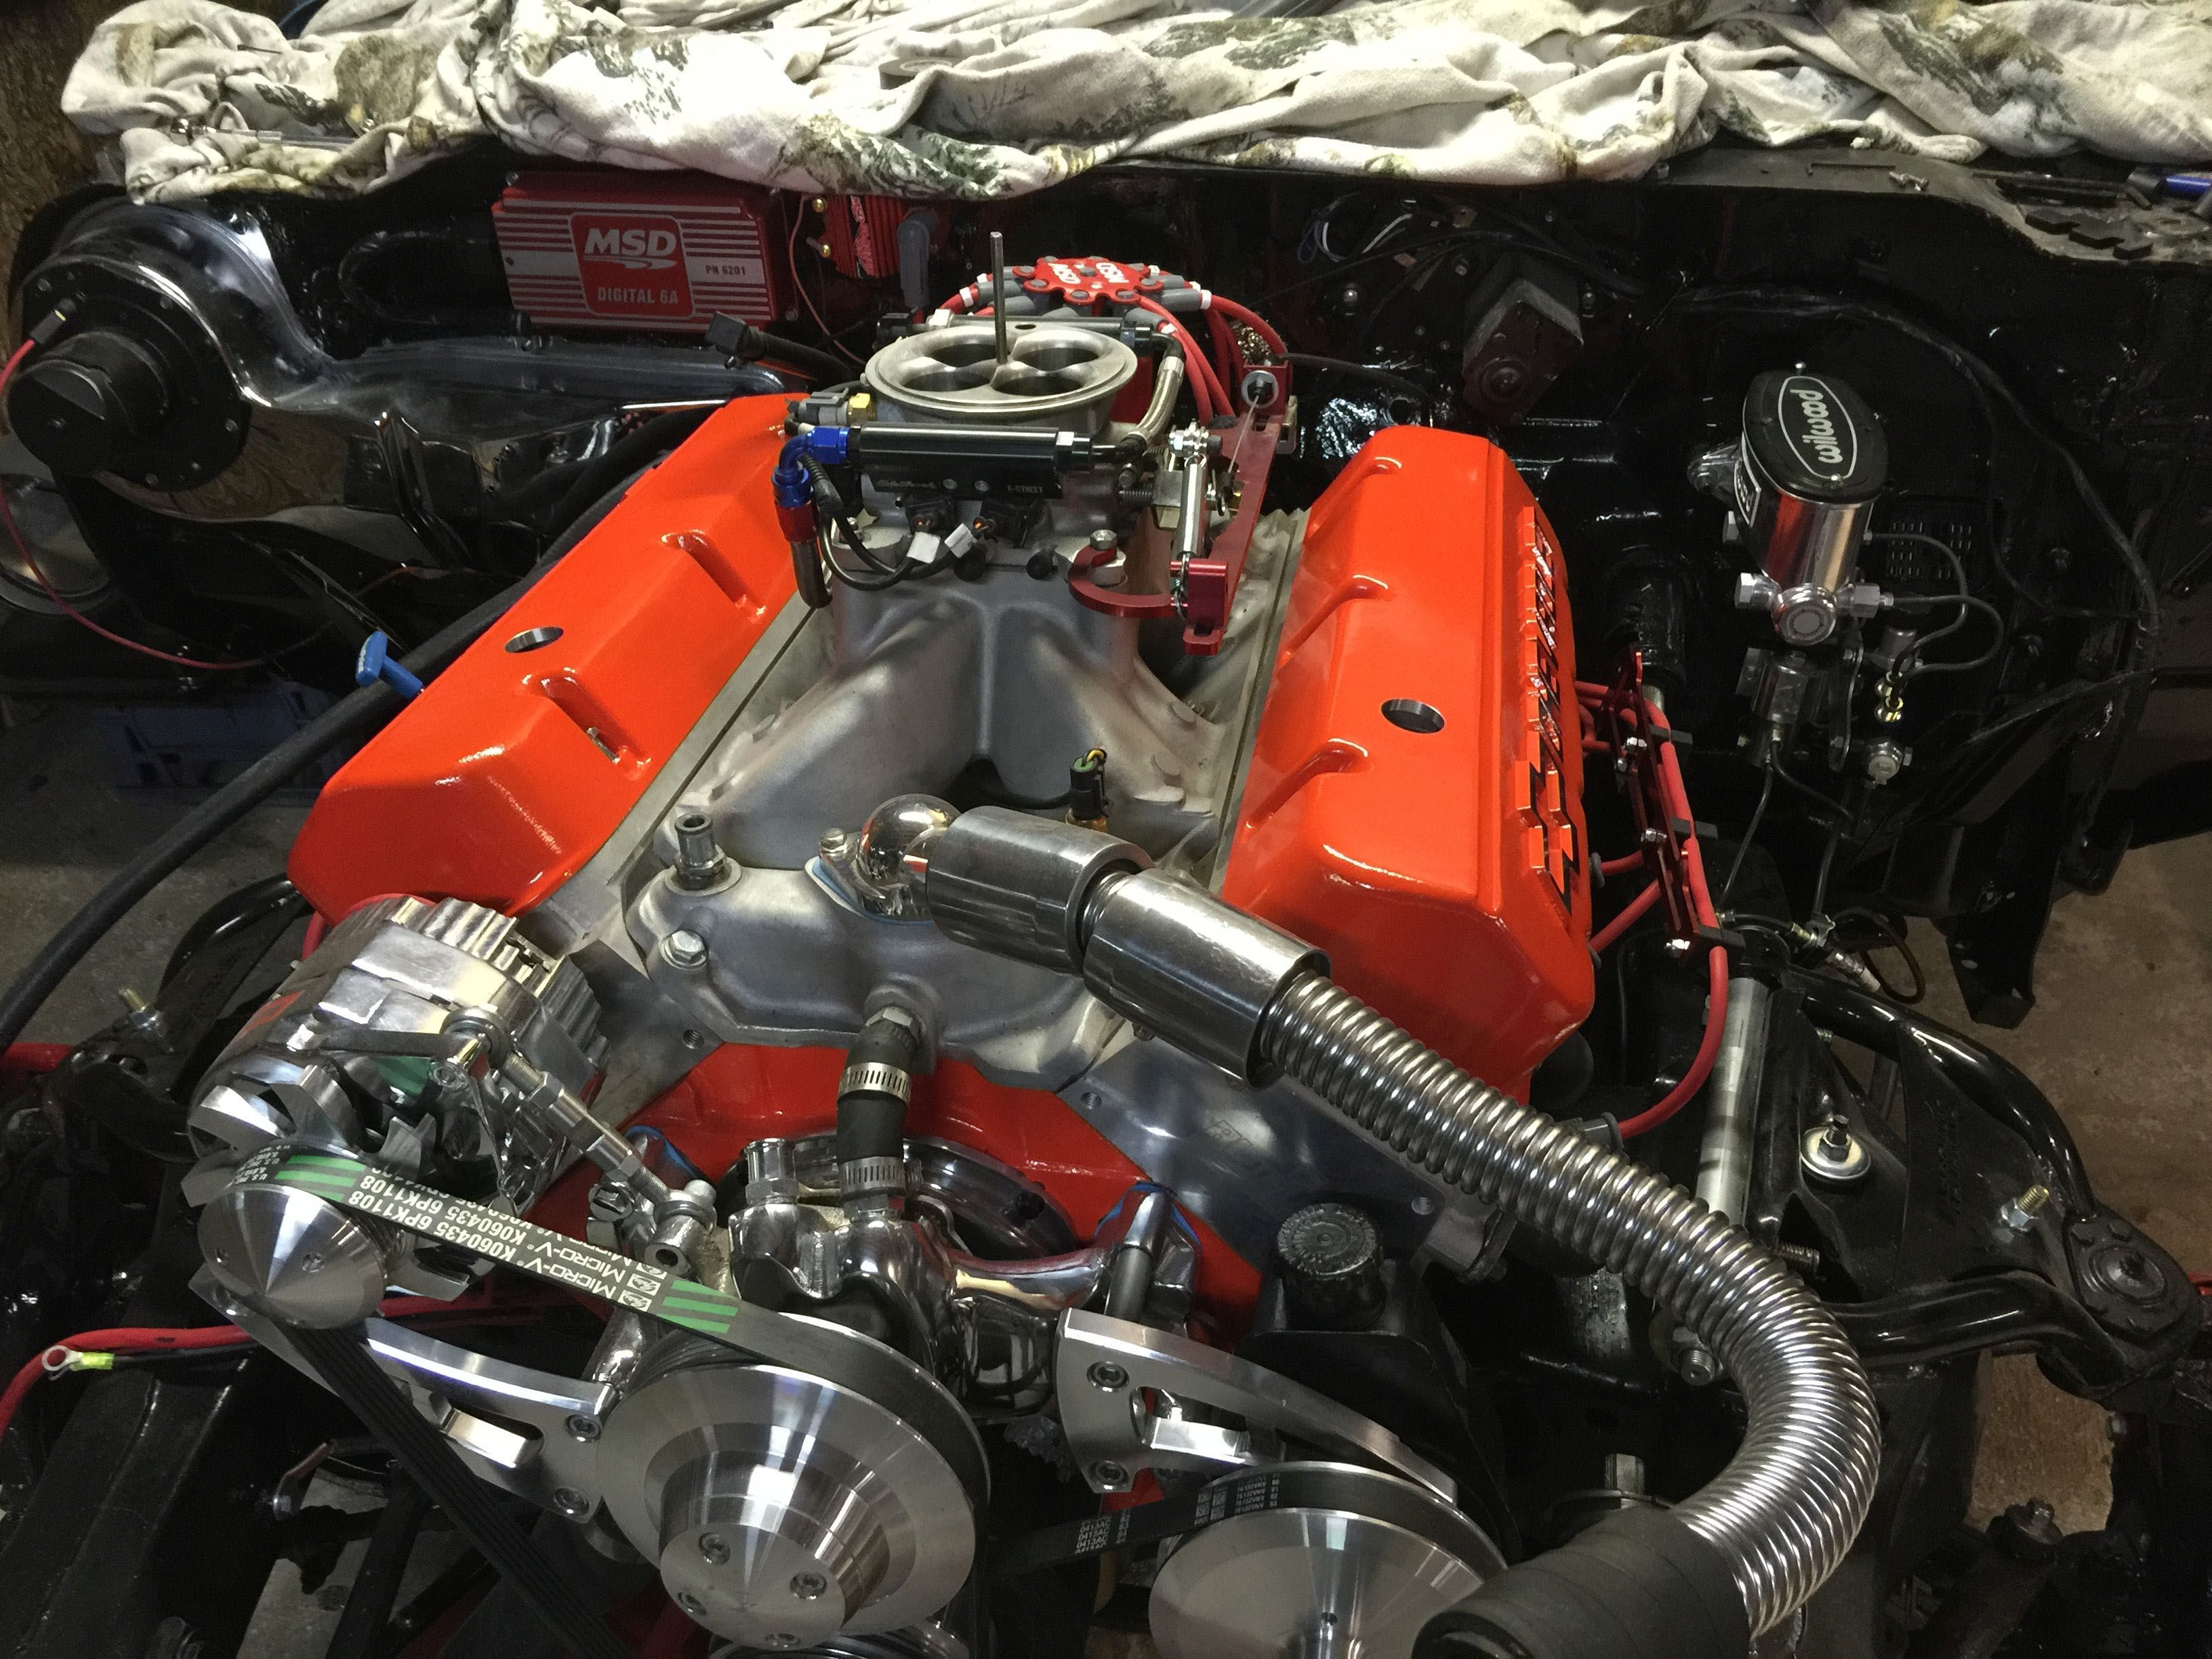 Httpblueprintenginesindexpproductsbp gm crate blueprint engines builds ford crate engines and chevy crate engines these crate engines are high performance drop in engines sometimes called stroker malvernweather Gallery